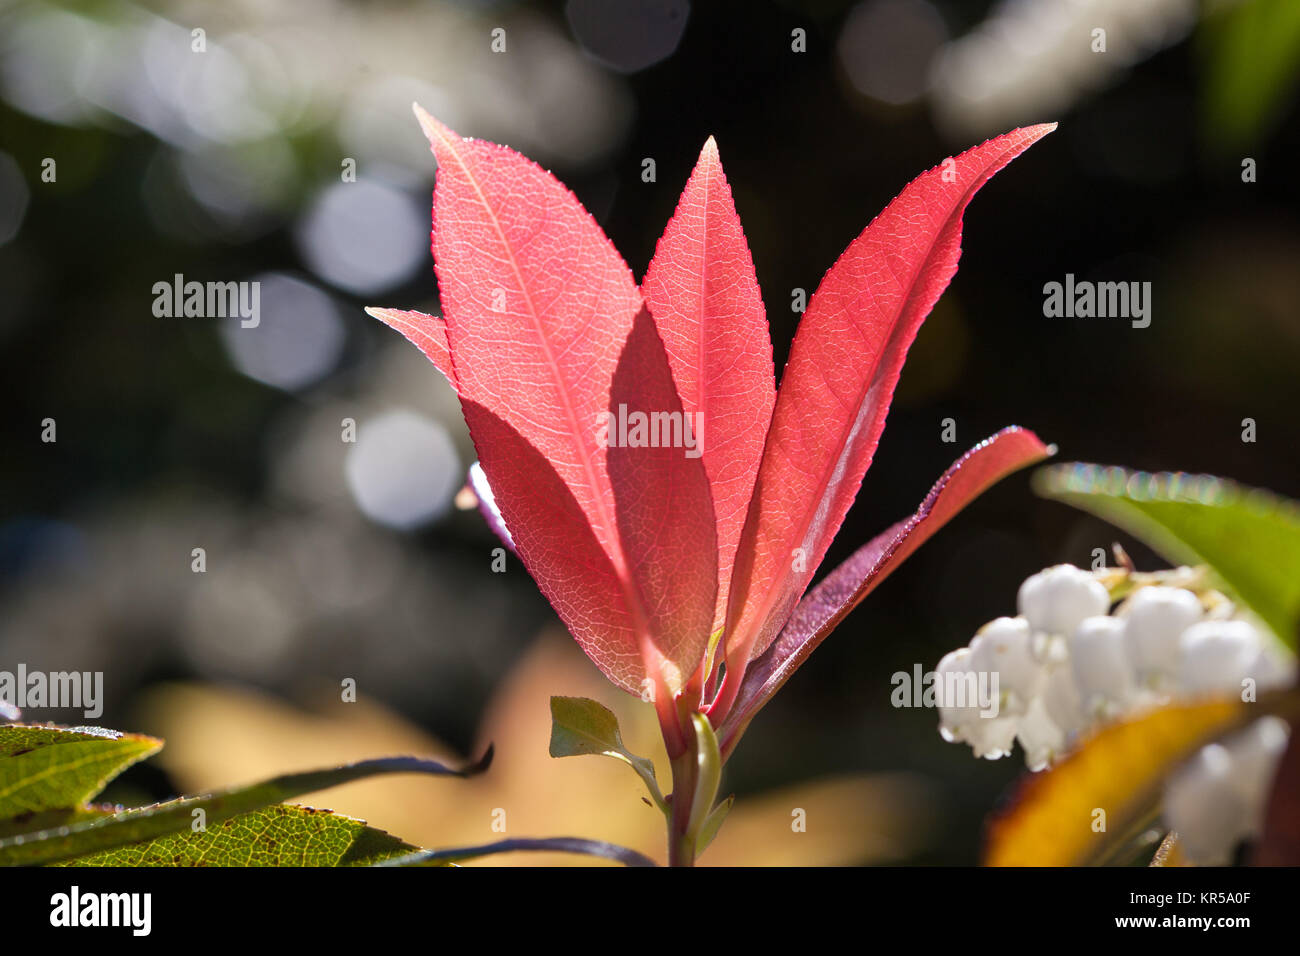 Beautiful red leafs closeup in bright sunlight on blurred background - Stock Image